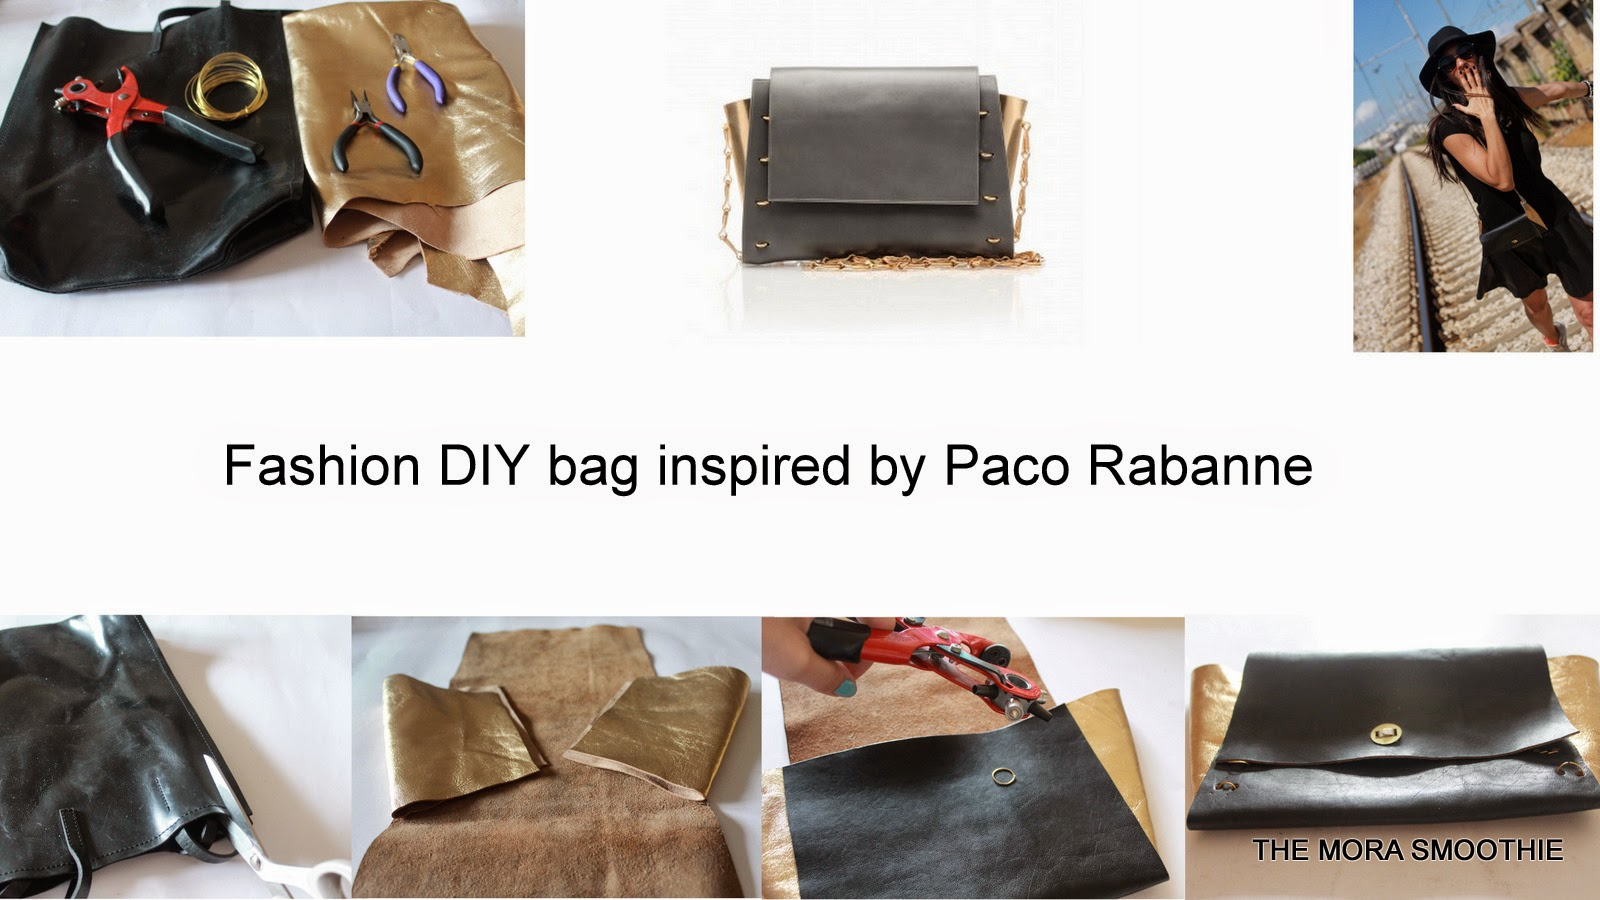 DIY, DIY bag, paco rabanne, fai da te borsa, do it your self, do it your self bag, borsa, fashion diy, fashionblog, fashionblogger, themorasmoothie, diyblog, diyblogger, fashionblogger italiana, diy blogger italia, italia fashion blog, fashionblogger italiane, italianfashionblog